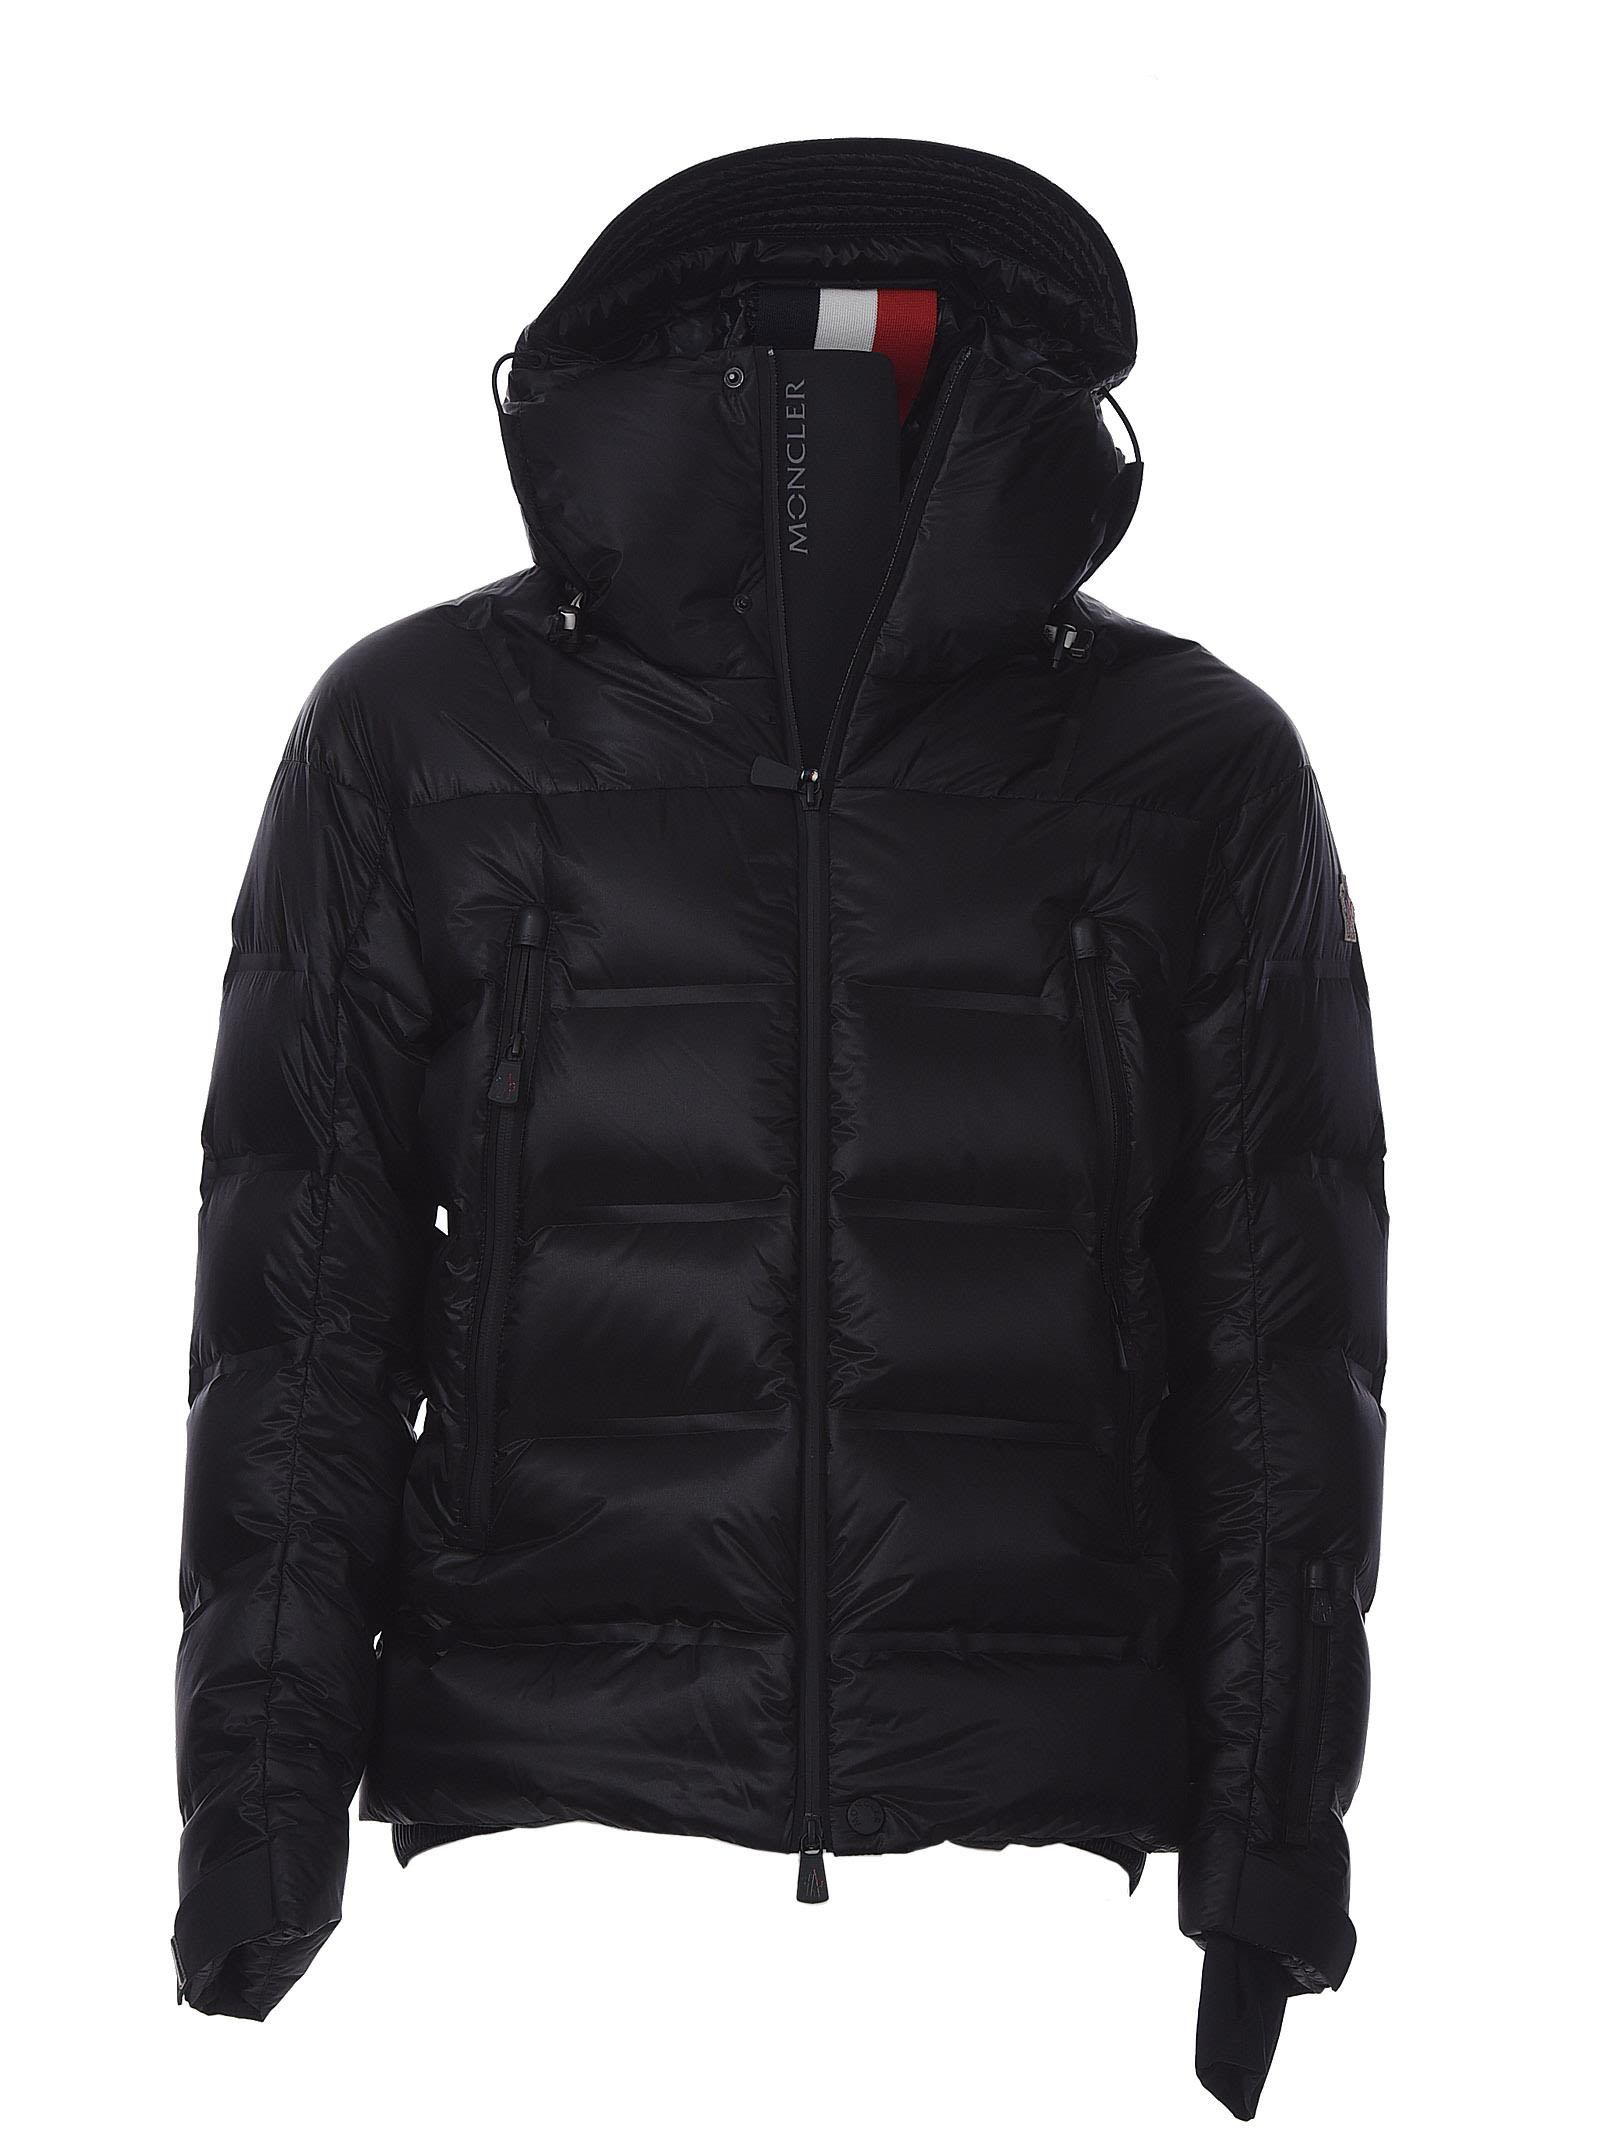 42a096608 france moncler grenoble jacket price canada usage 40c78 07047